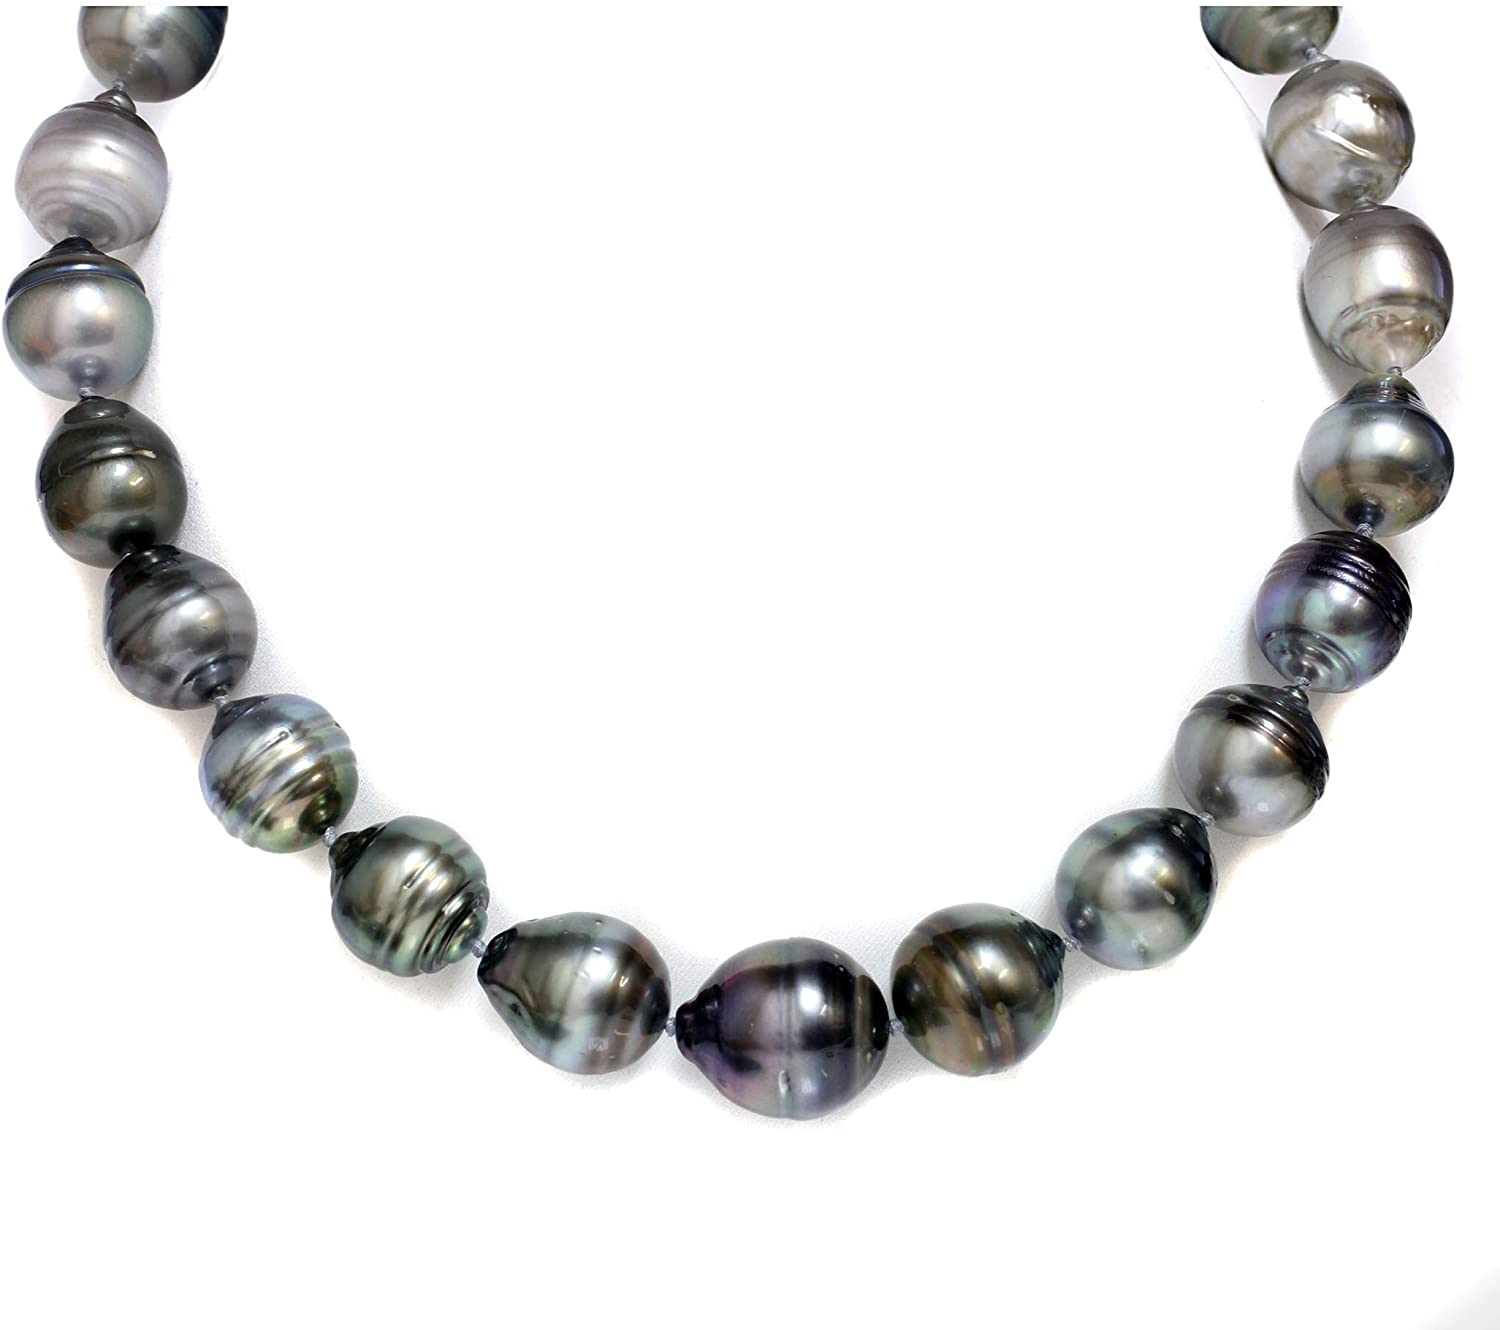 AAA NATURAL TAHITIAN GENUINE BLACK PEARL NECKLACE white//gold Silver chain